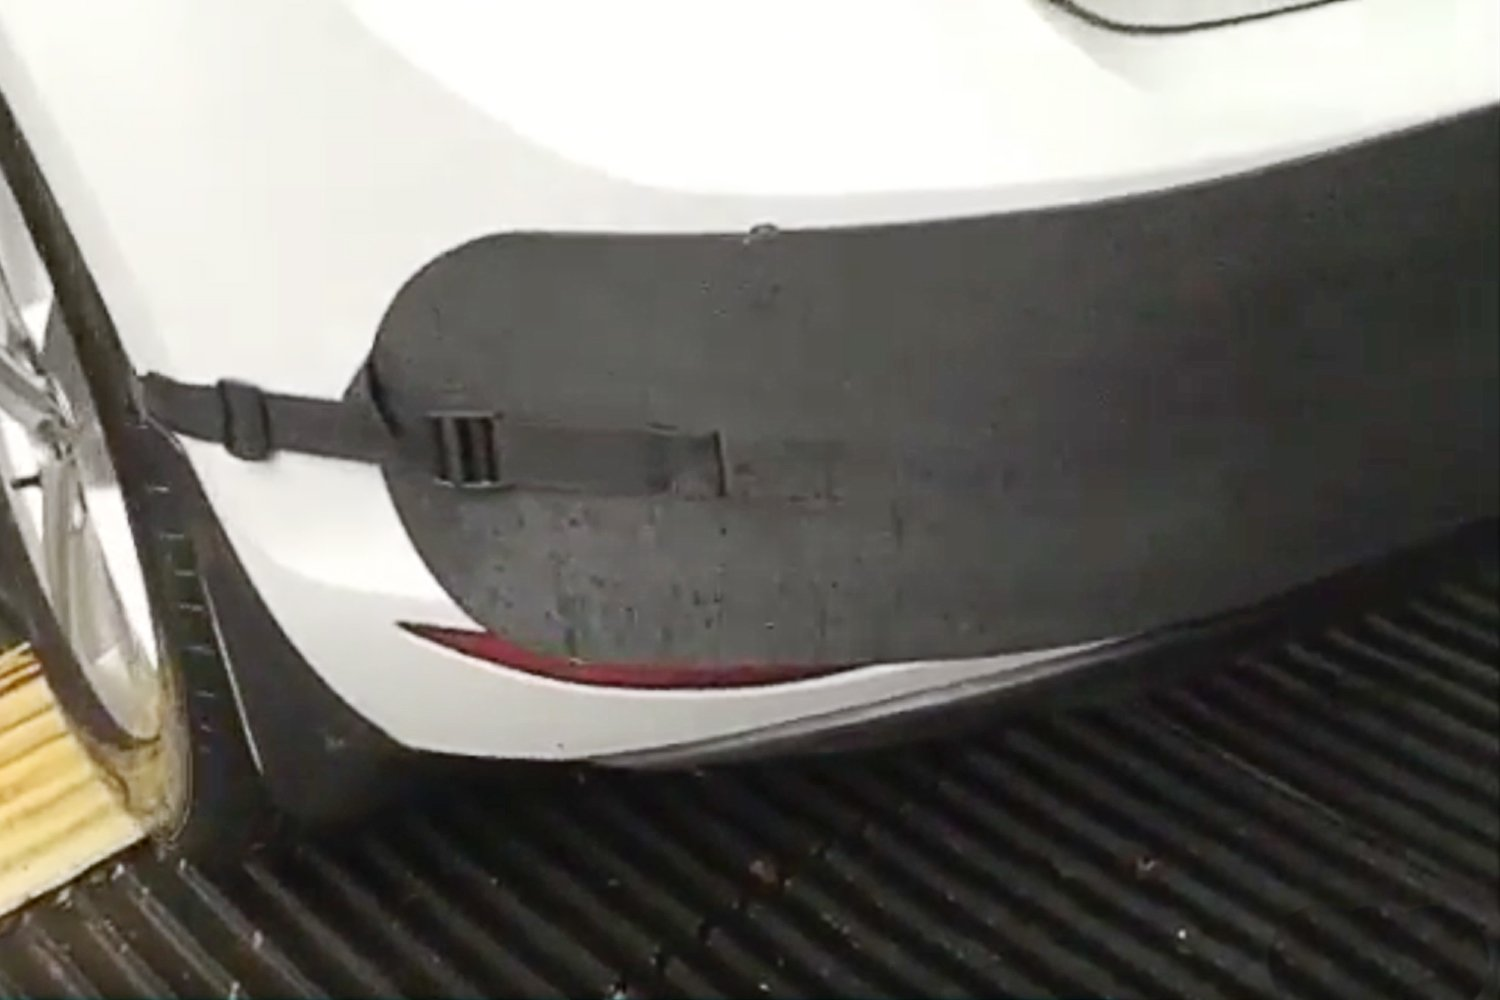 Bumper Protector from Dings//Dents and Scratches While You Park In the City 12012 Protekt Bumper Guard for Cars